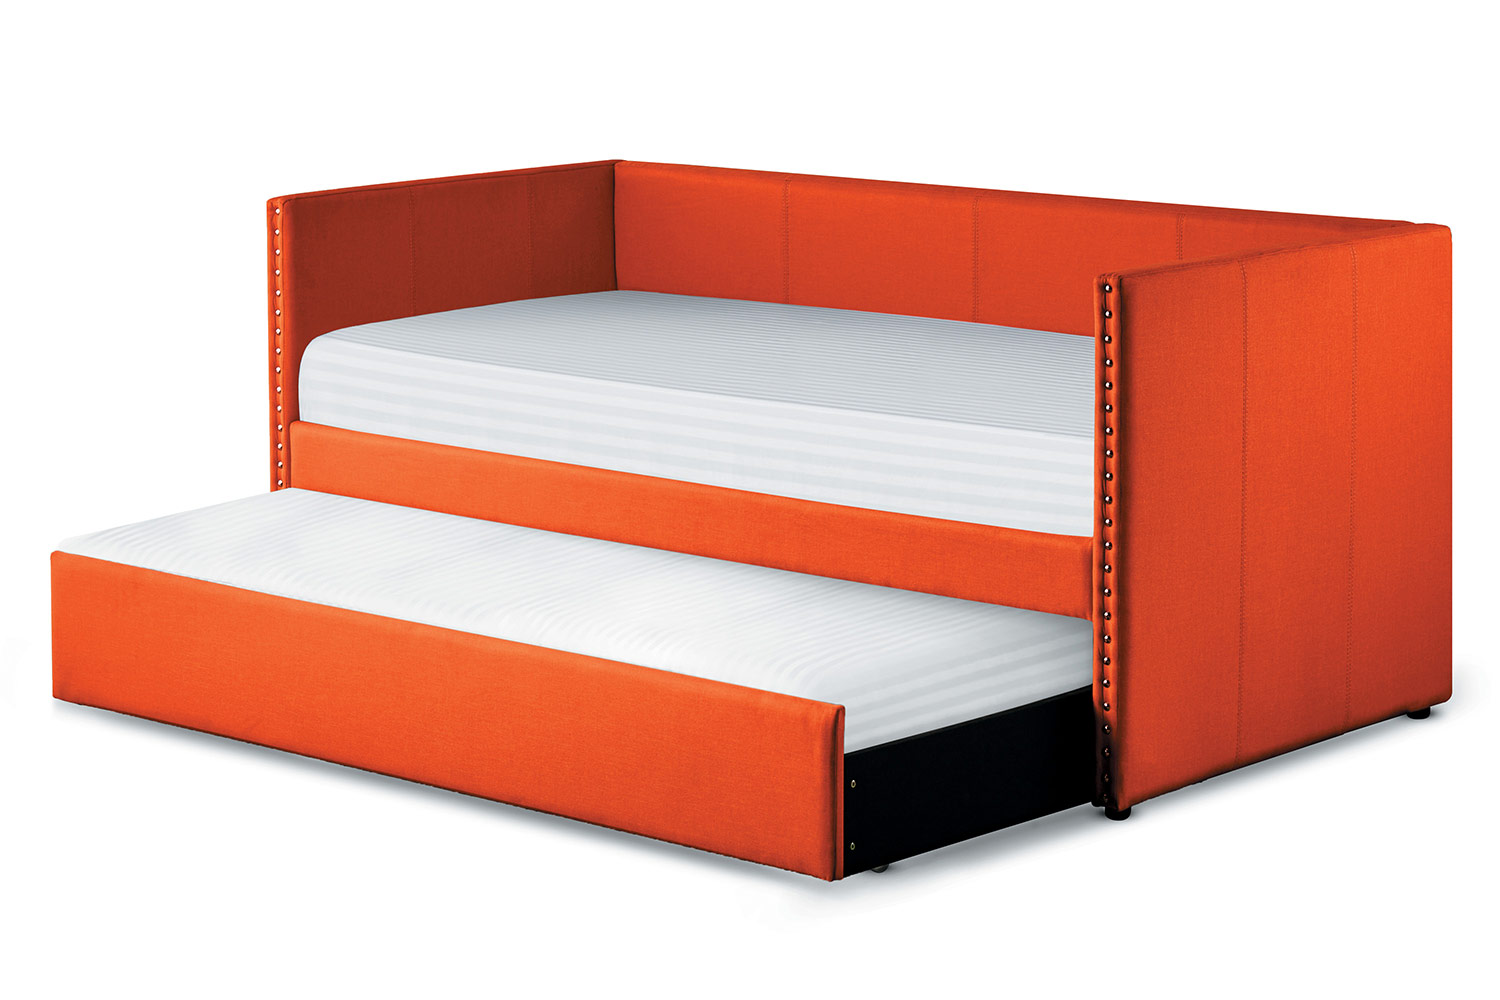 Homelegance Therese Daybed with Trundle - Orange